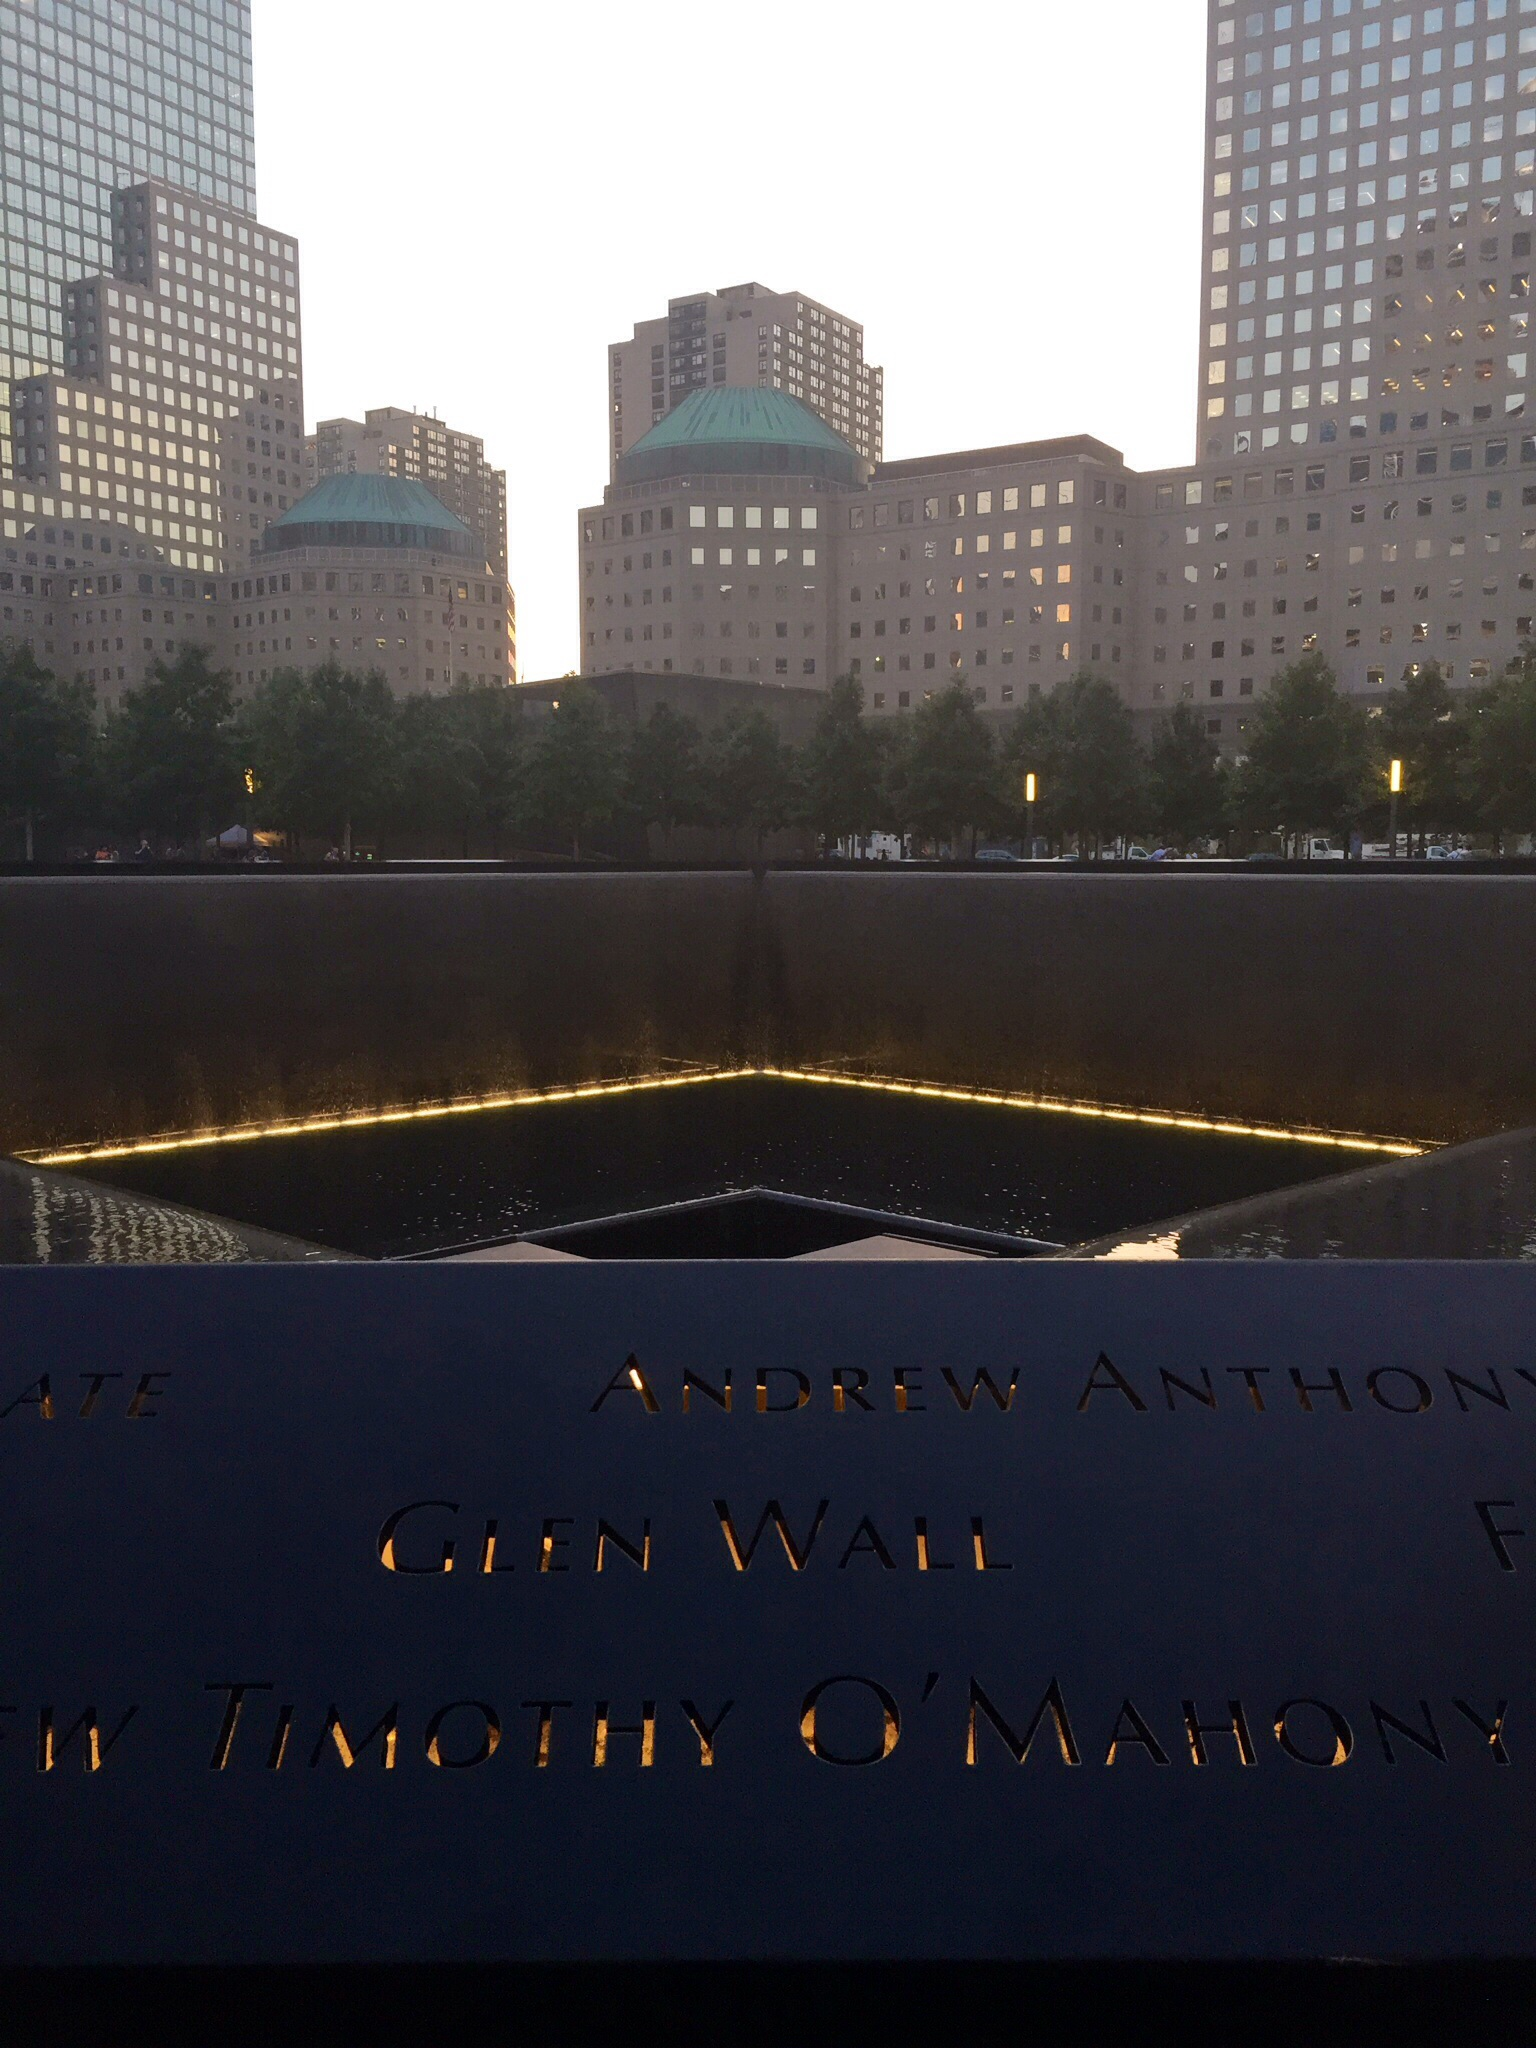 September 11th Reflecting Pools